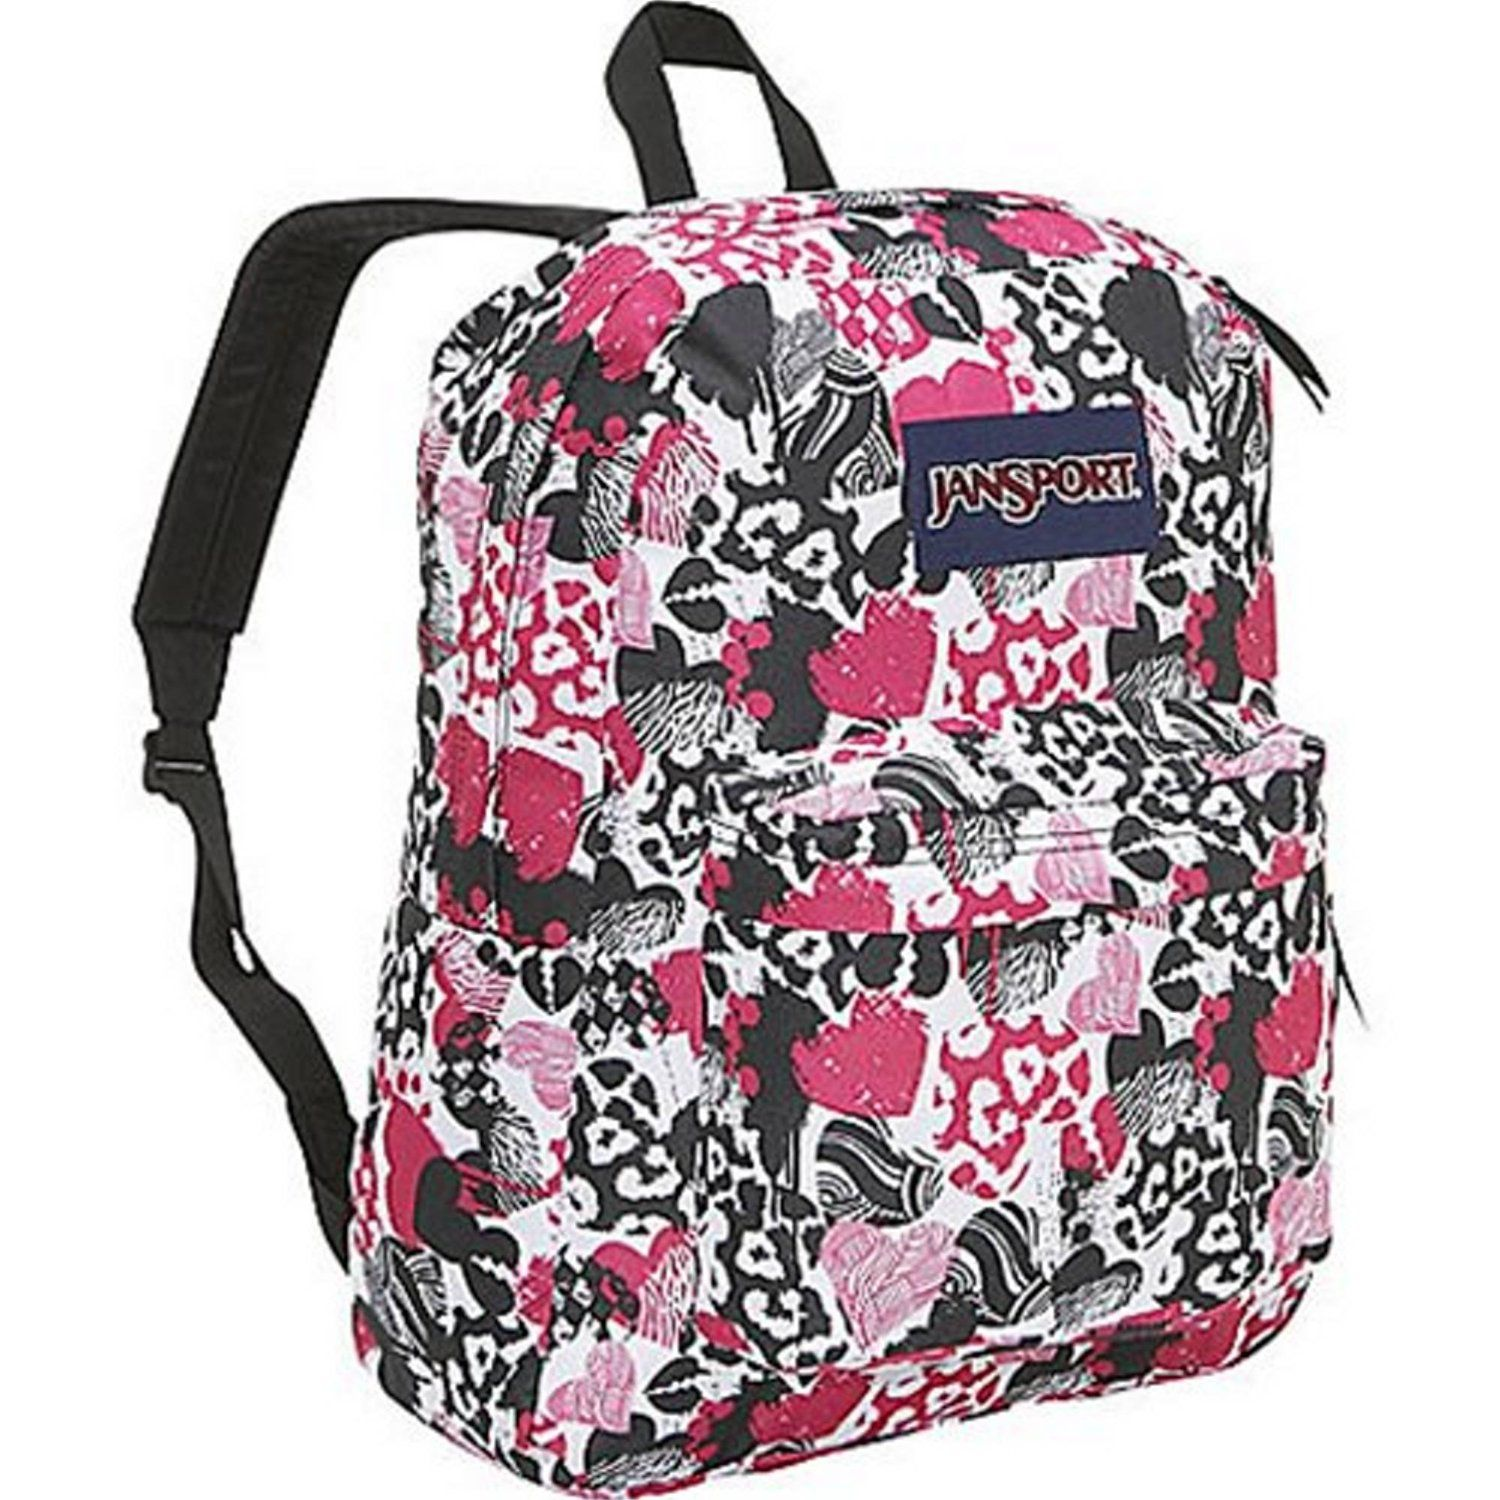 Jansport Backpacks For Girls School | www.pixshark.com ...